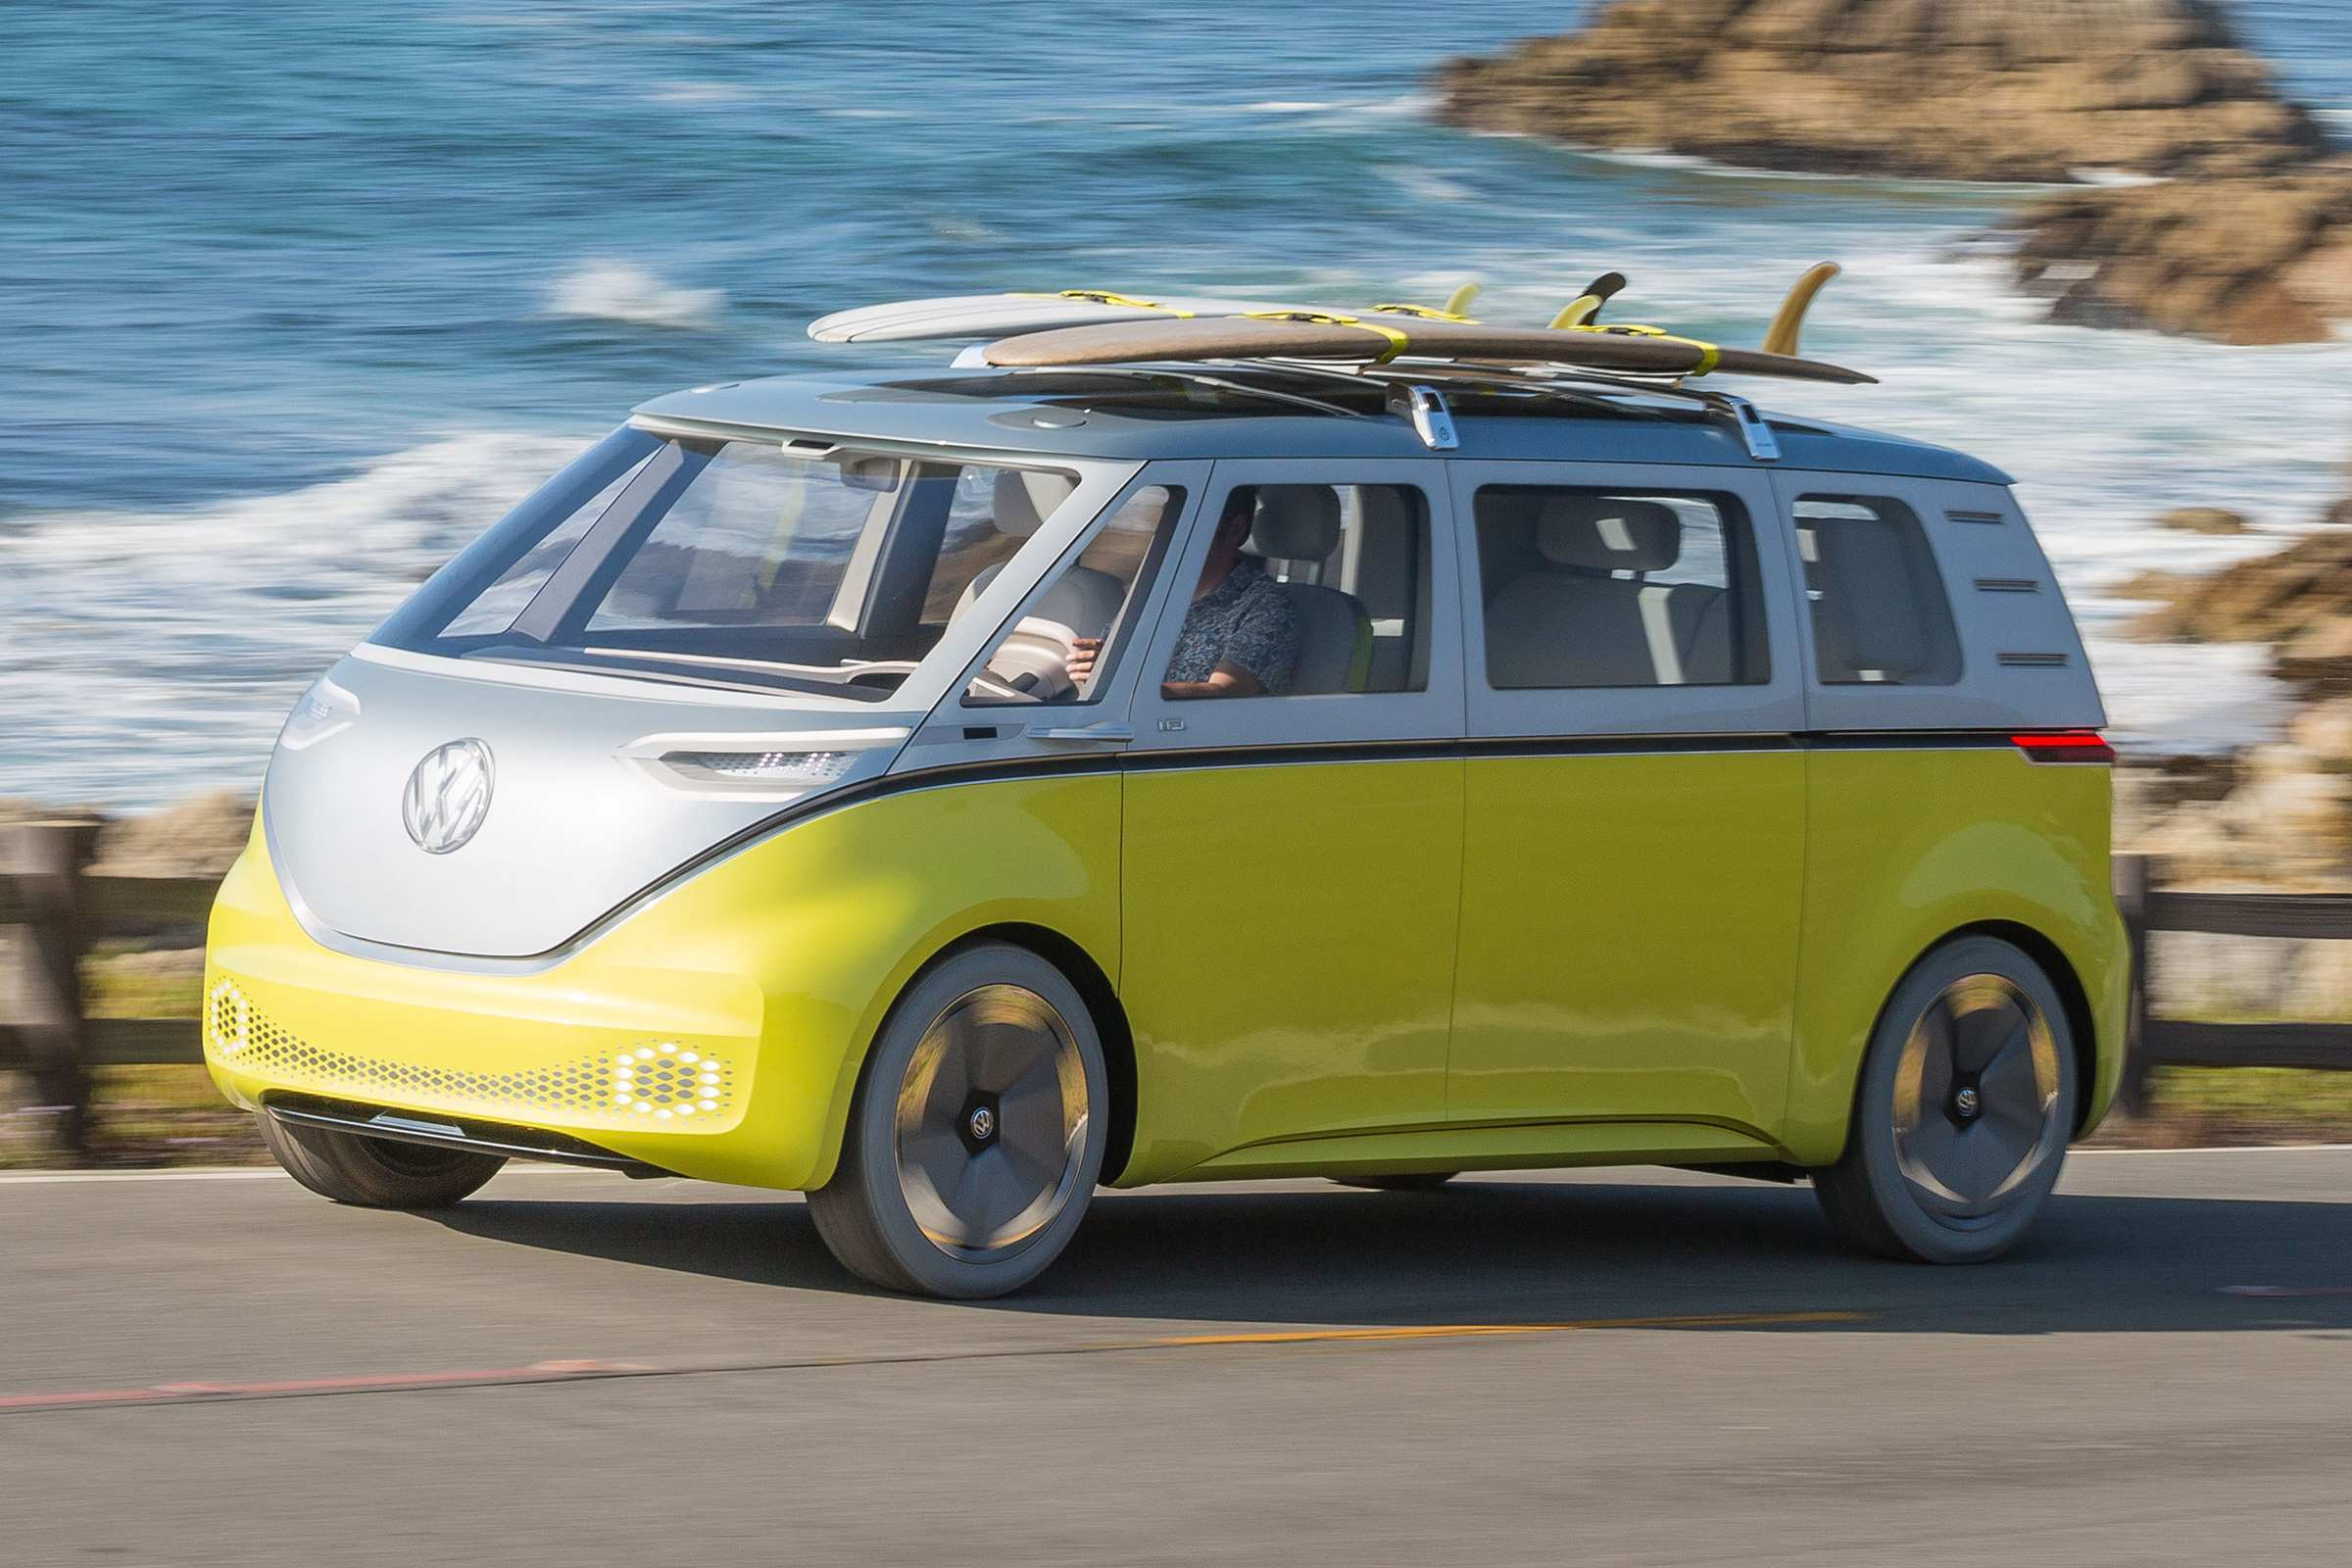 89 All New VW Kombi 2020 Redesign and Concept for VW Kombi 2020